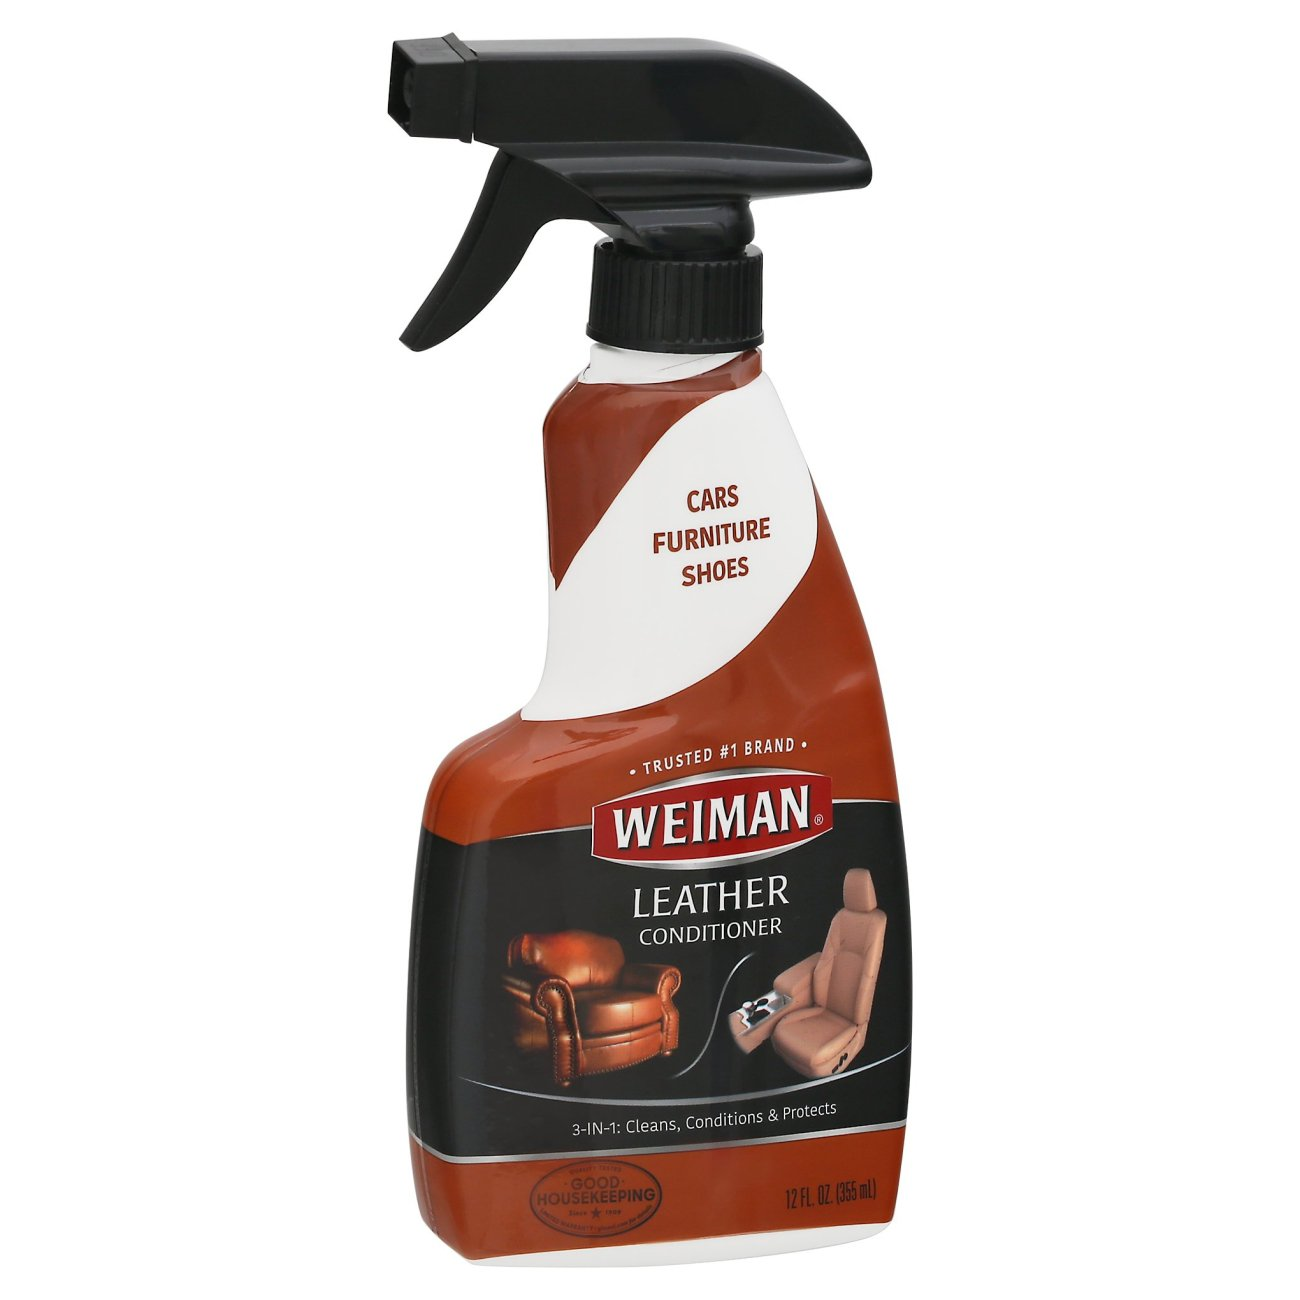 Weiman Leather Cleaner Conditioner Spray Shop Carpet Upholstery Cleaners At H E B